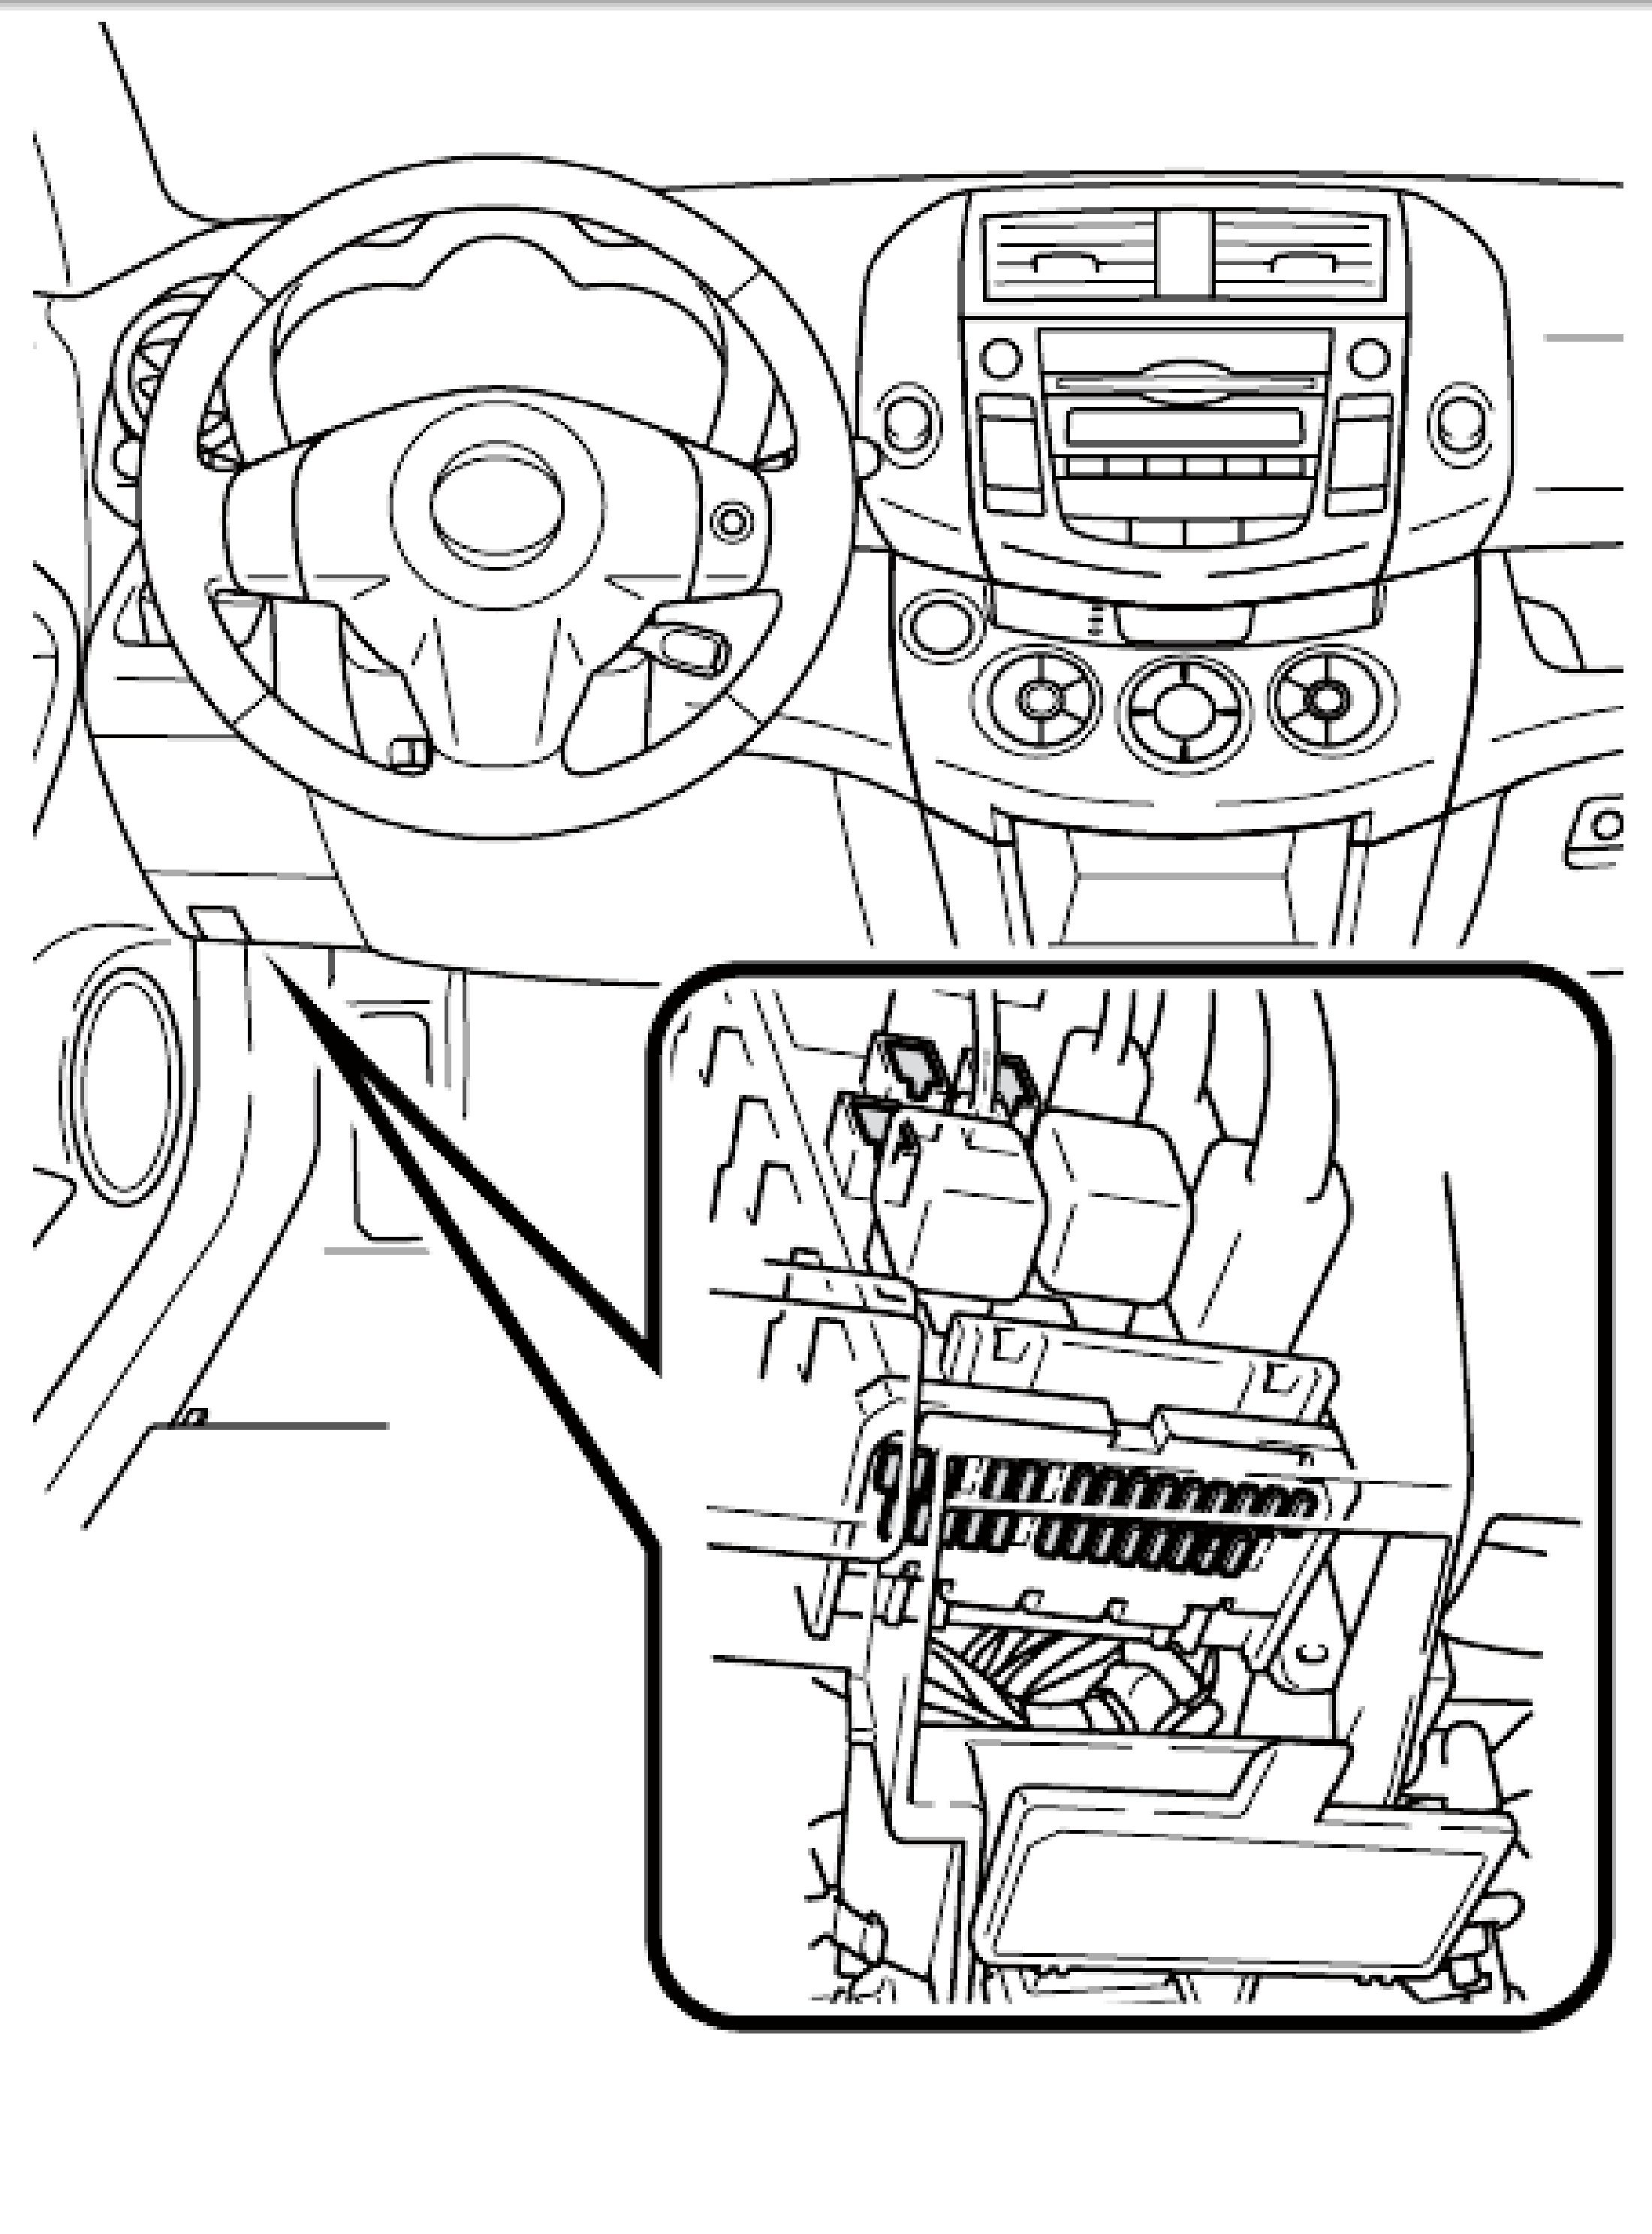 2006 toyota corolla fuse box diagram iaNkJnj 2006 toyota corolla fuse box diagram image details 2006 corolla fuse box location at edmiracle.co